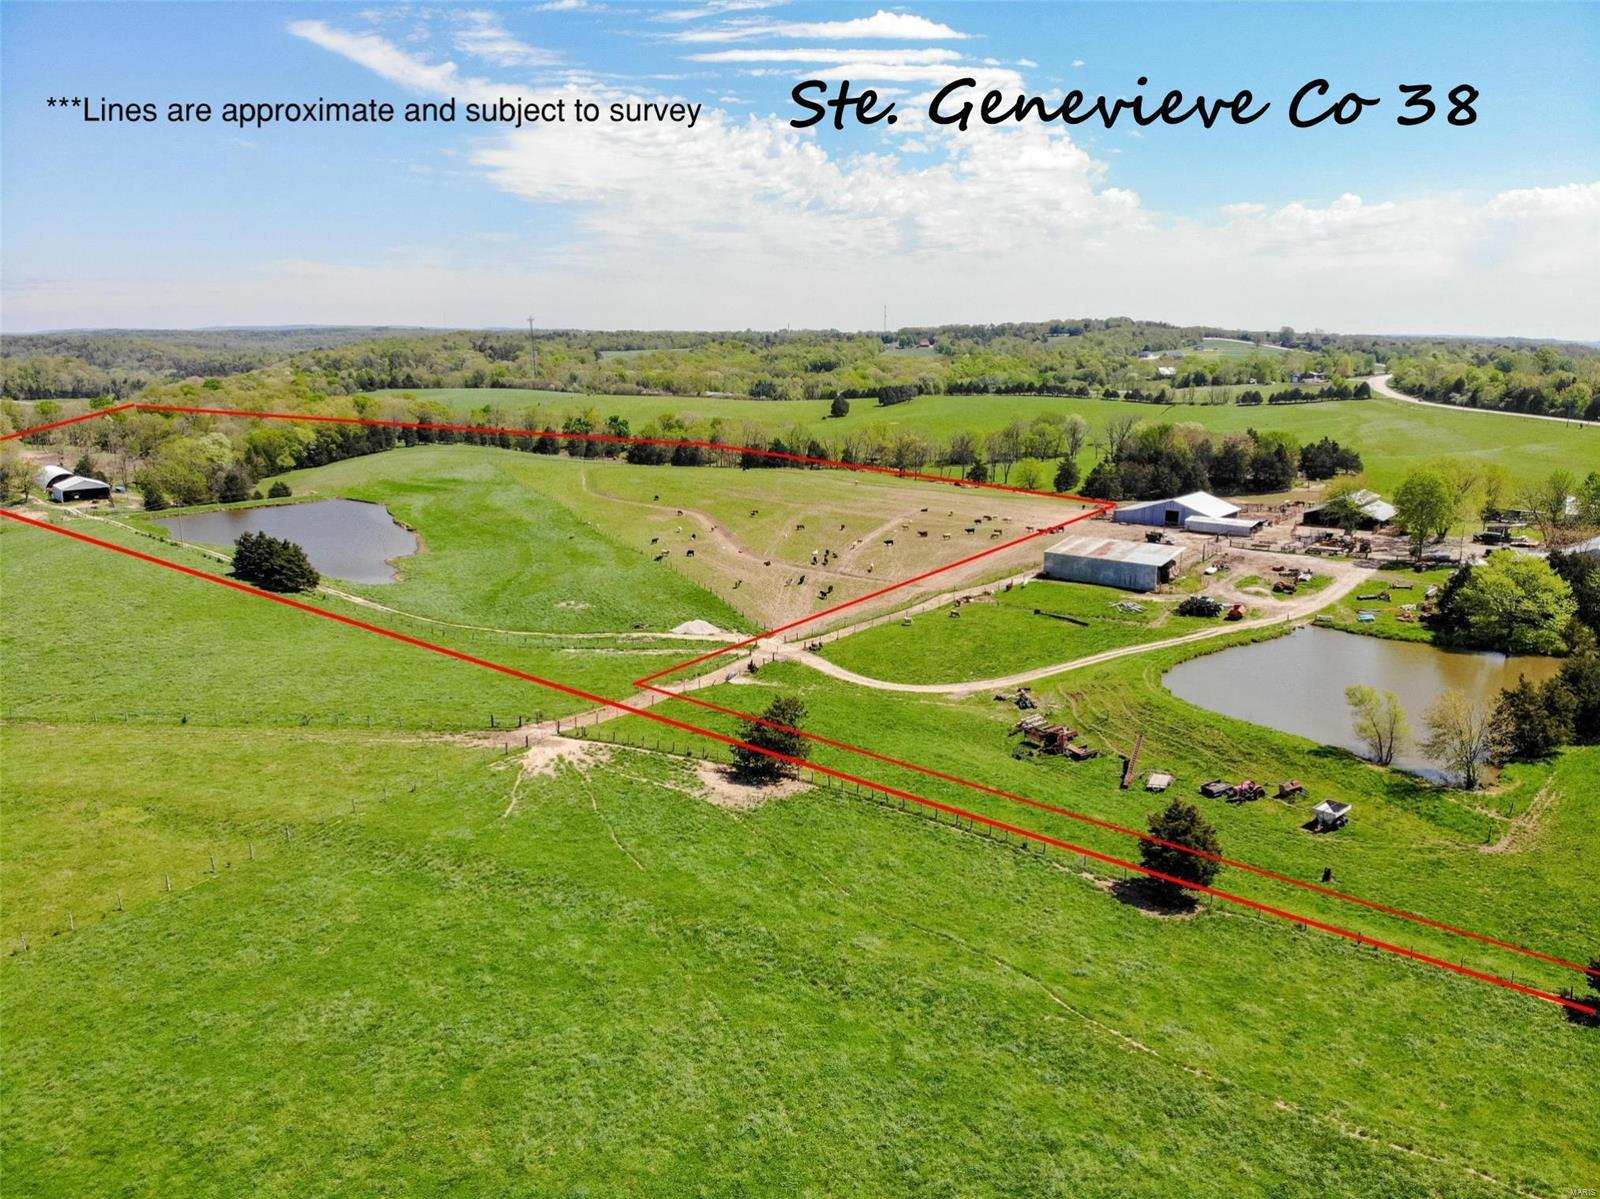 11449 US HWY 32 Property Photo - Ste Genevieve, MO real estate listing